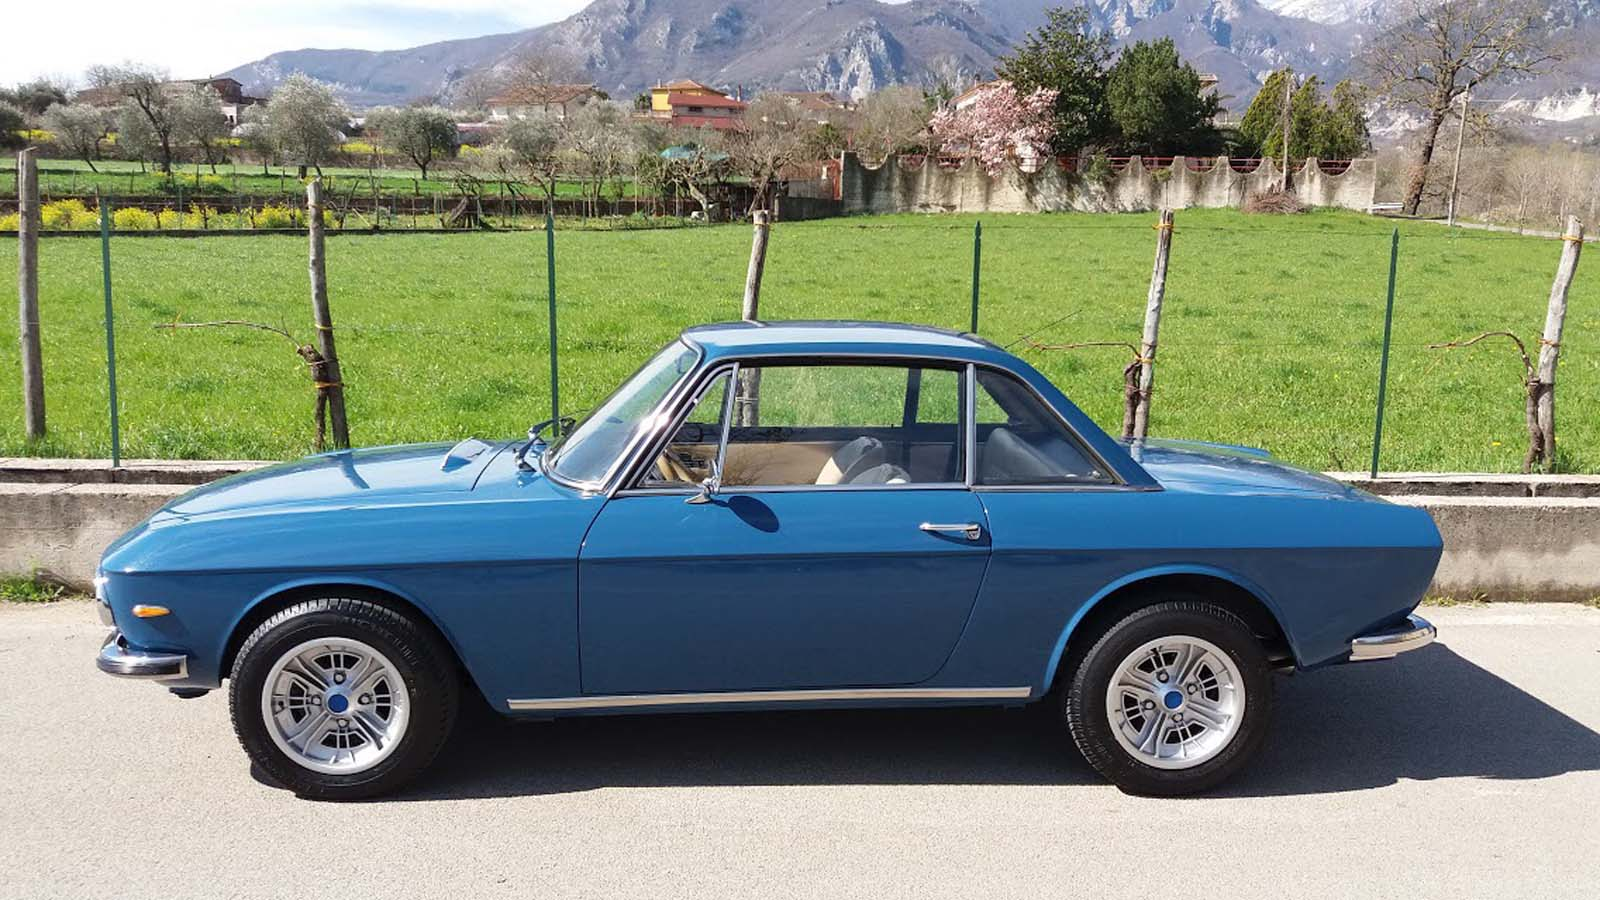 life with a 1974 lancia fulvia 3 1.3s: new tyres and original wheels